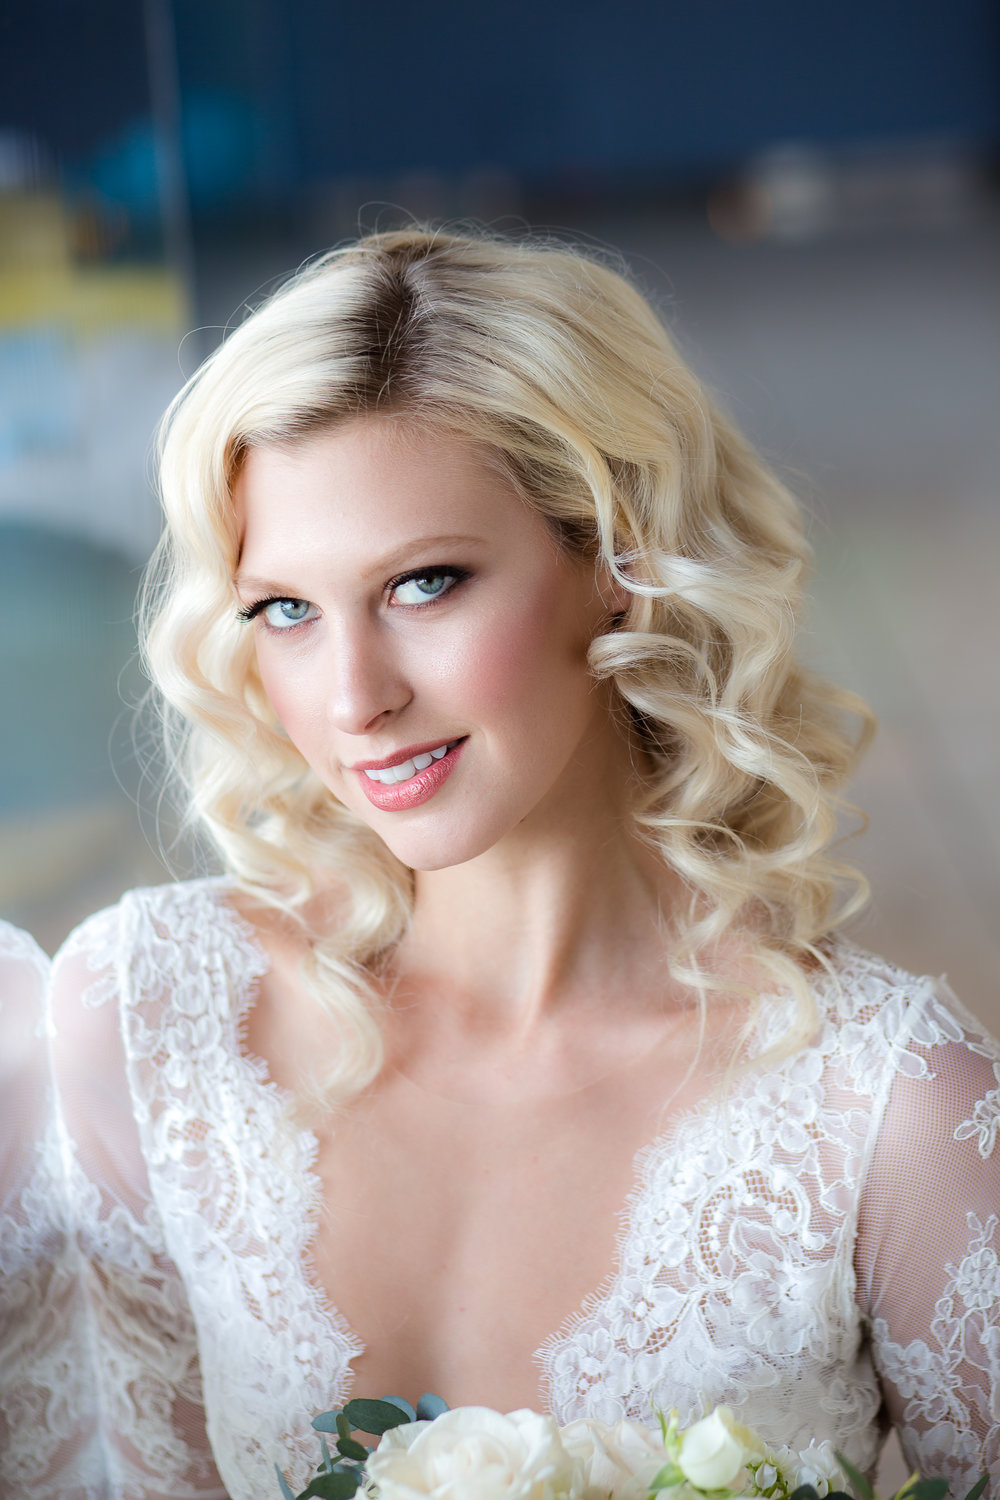 Best wedding hair and makeup in Las Vegas